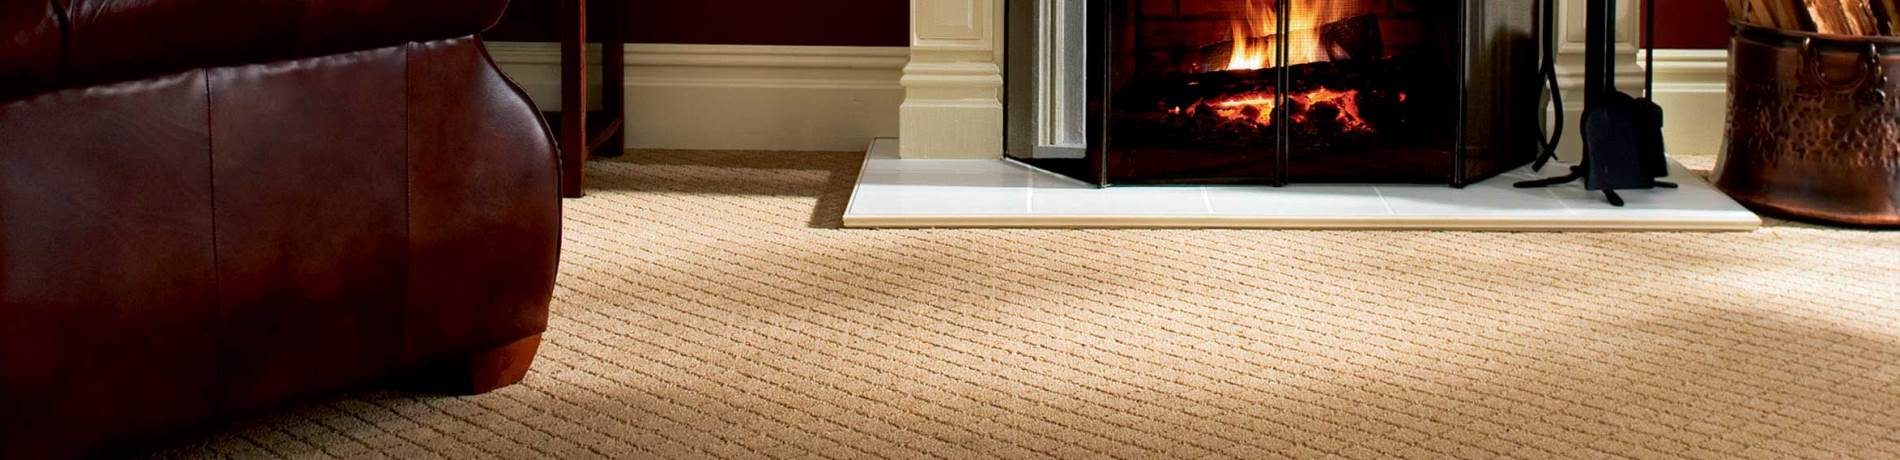 Carpet Cleaning Adelaide Services Give the Cleanest Floor to Step on Health